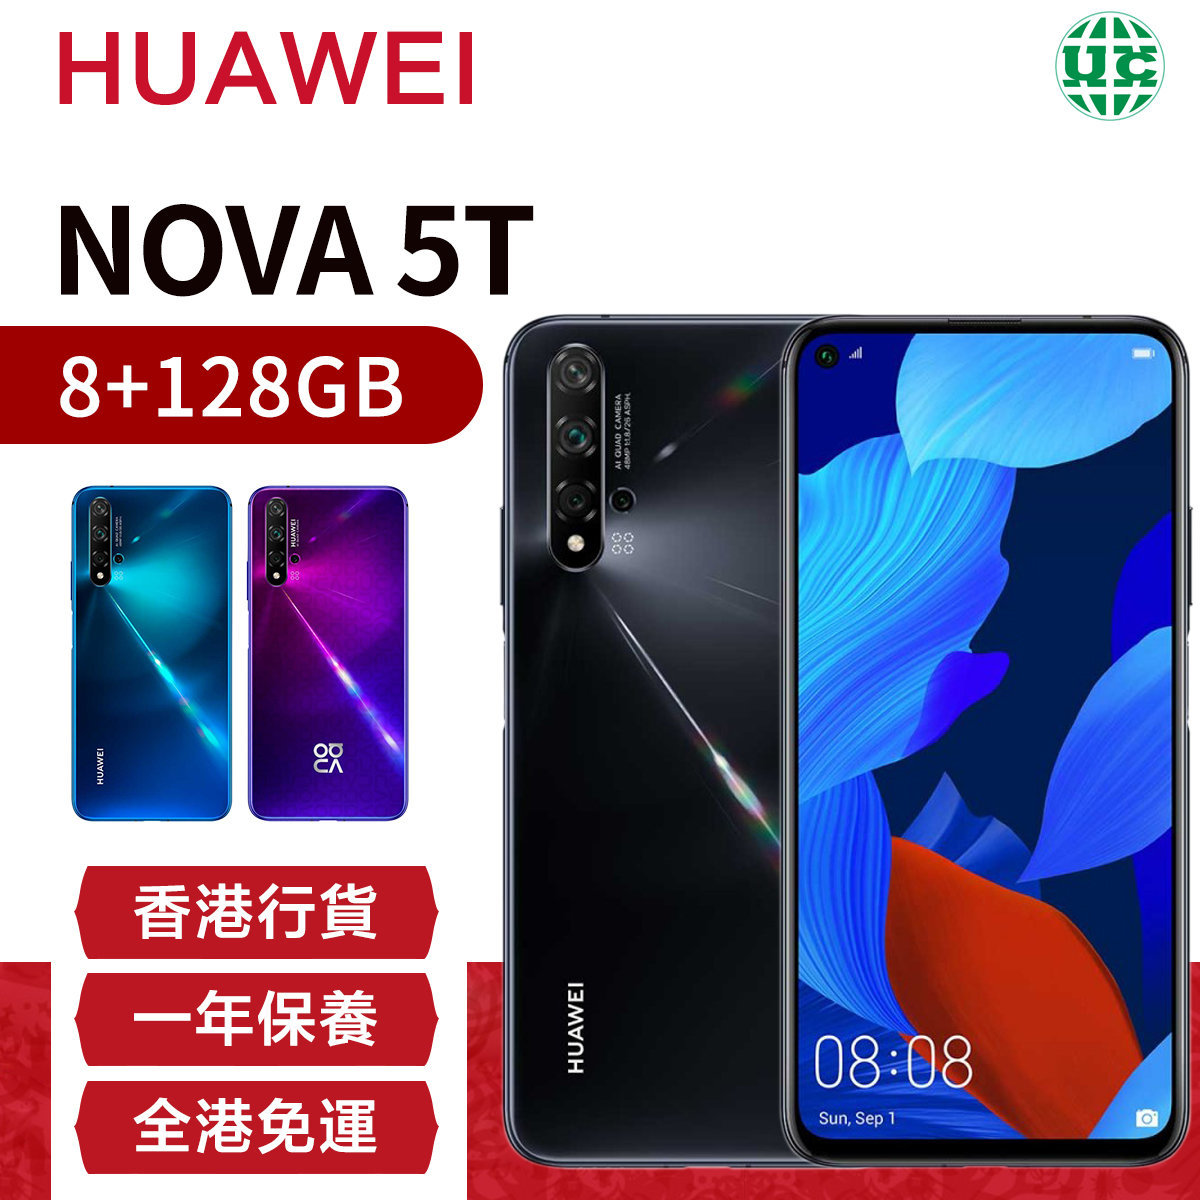 nova 5t 8 + 128GB dual sim (licensed in Hong Kong)